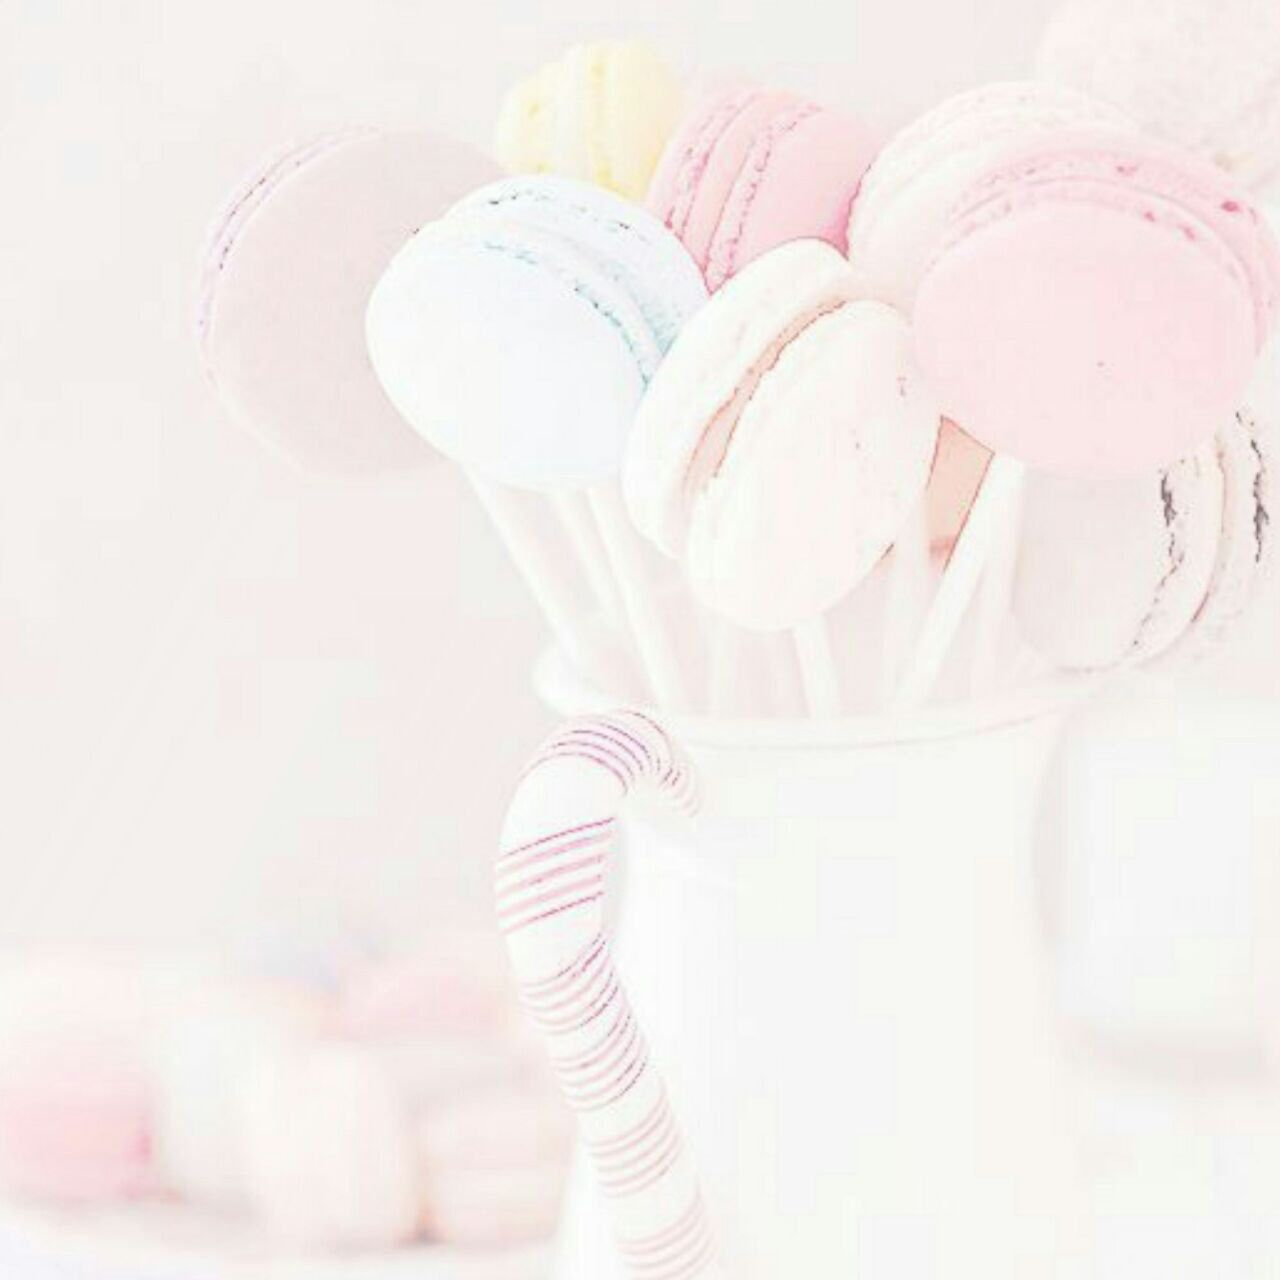 Pin By Badora On Crafting Crafts Desserts